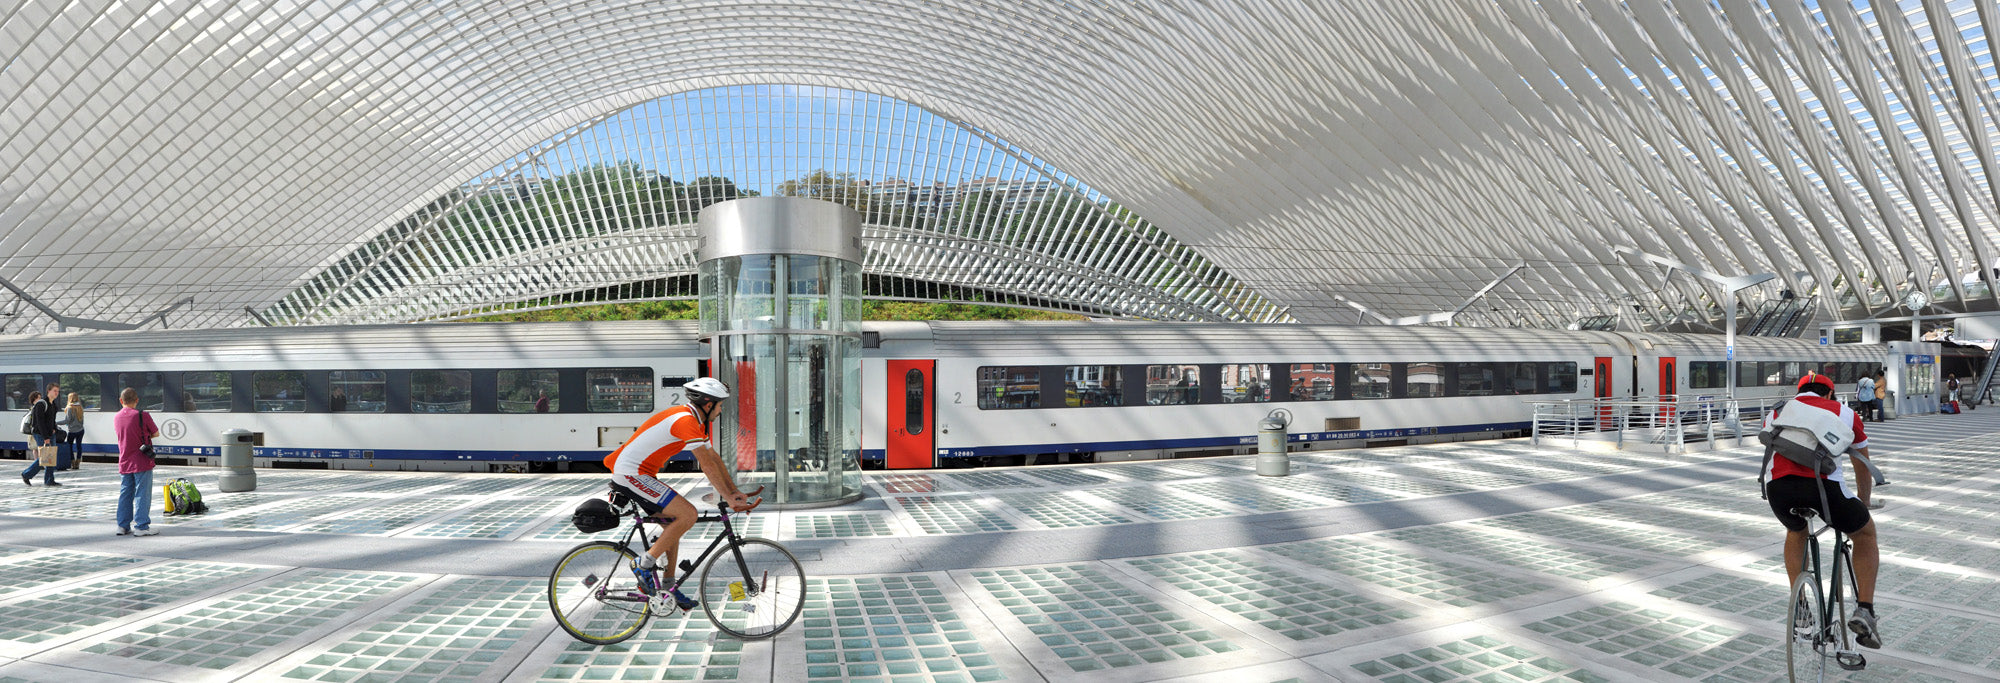 Guillemins railway station by bike - Limited Edition up to 60 cm x 175 cm